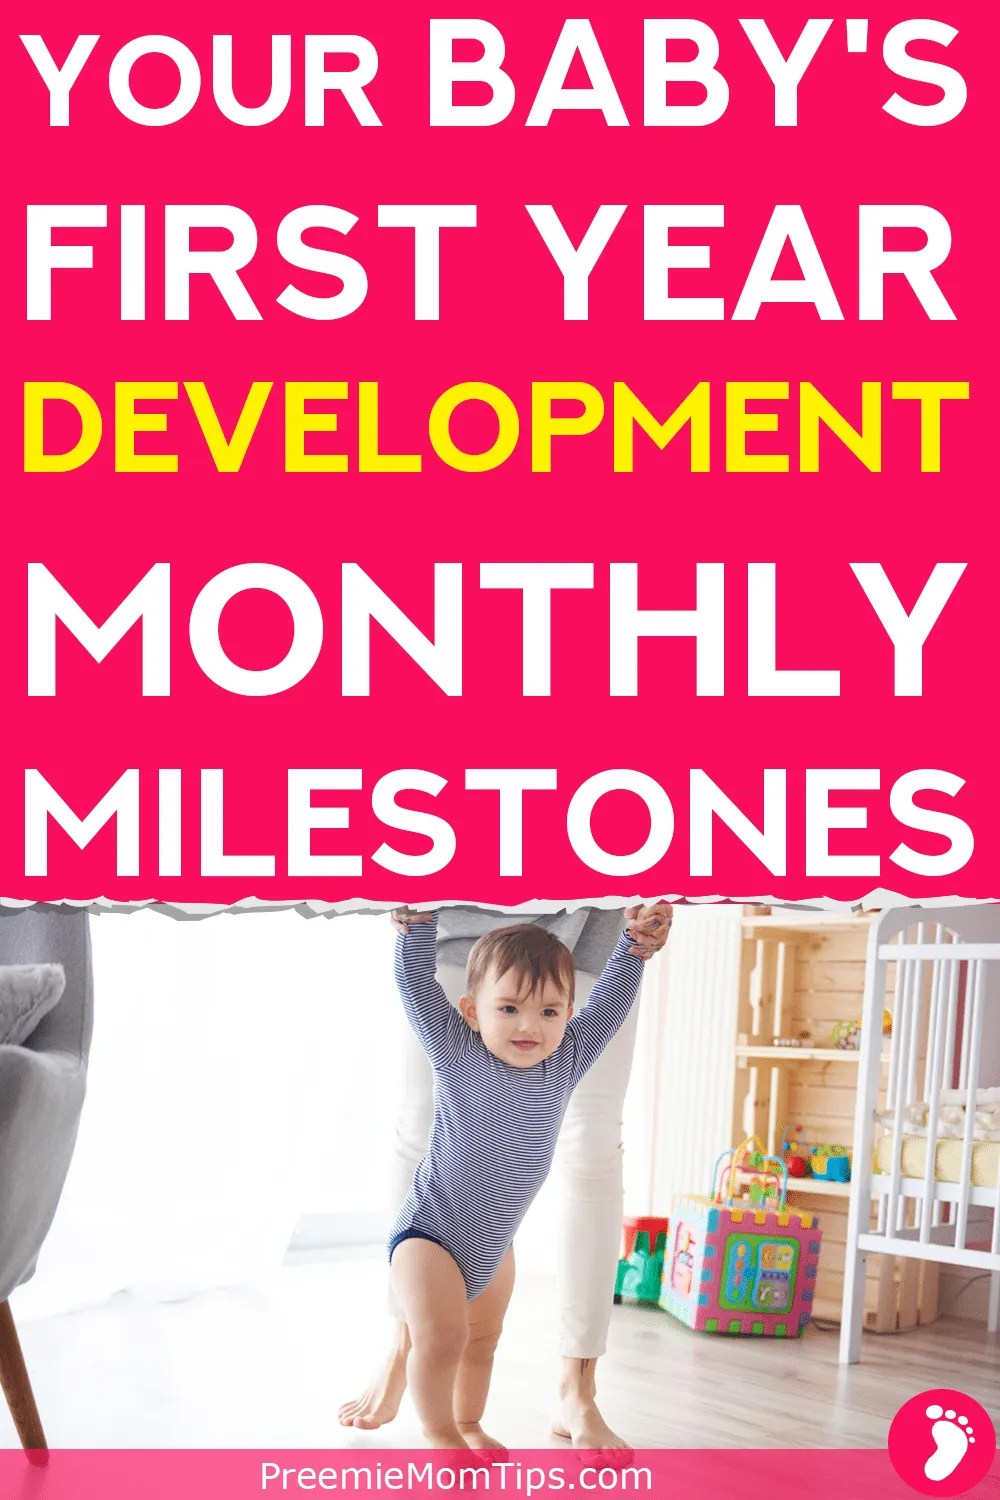 Are you a new parent? Then you definitely need to track your little one's development! Don't miss a thing with this baby milestone guide, month by month!